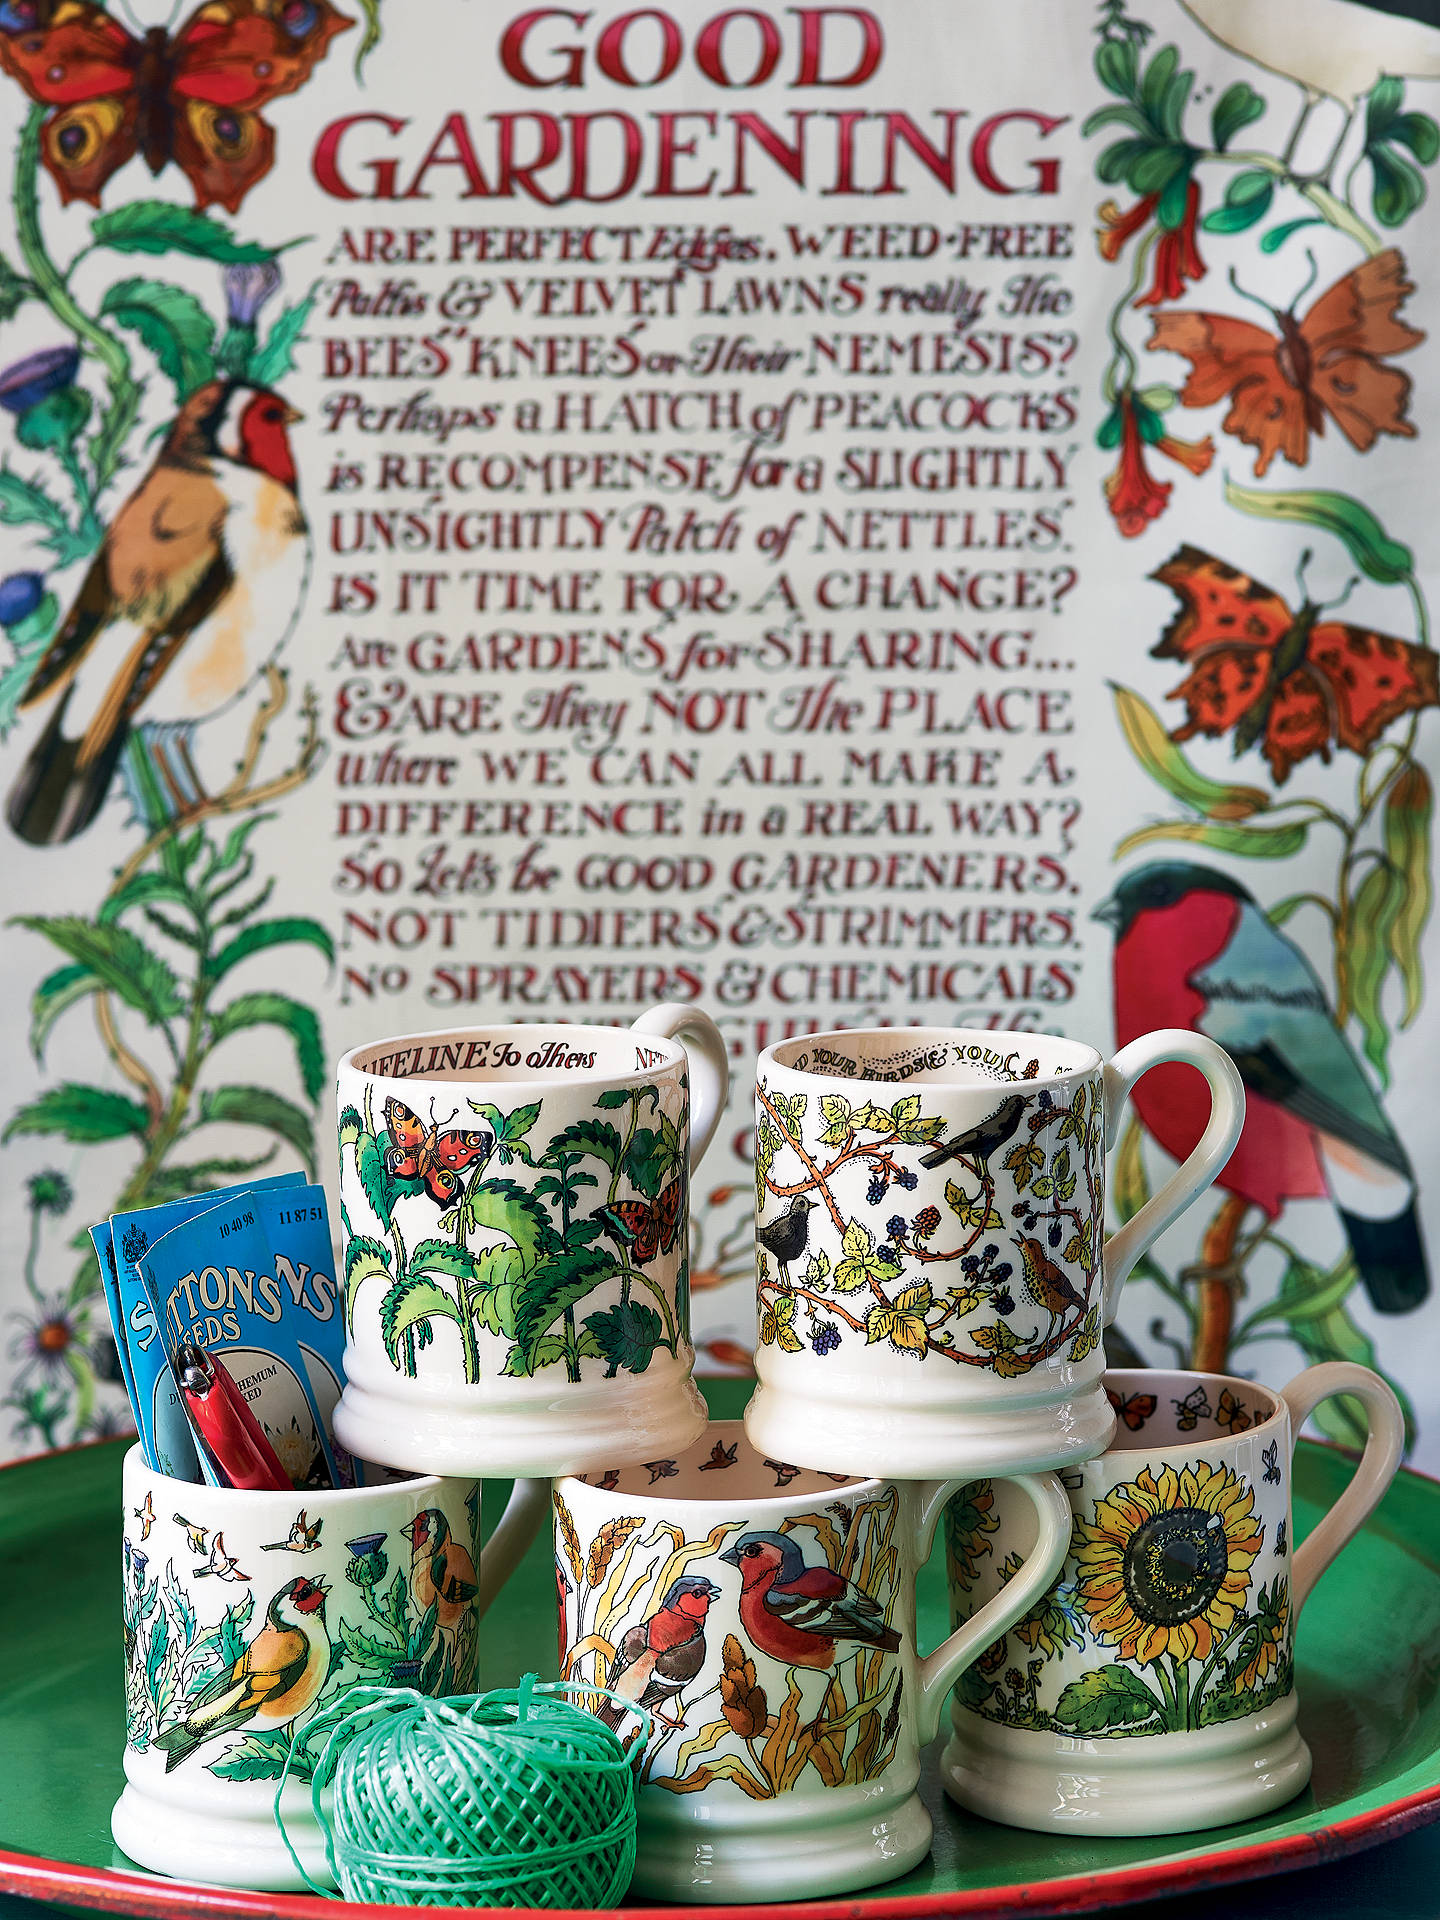 Buy Emma Bridgewater Good Gardening Nettles Half Pint Mug, 280ml, Green/Multi Online at johnlewis.com